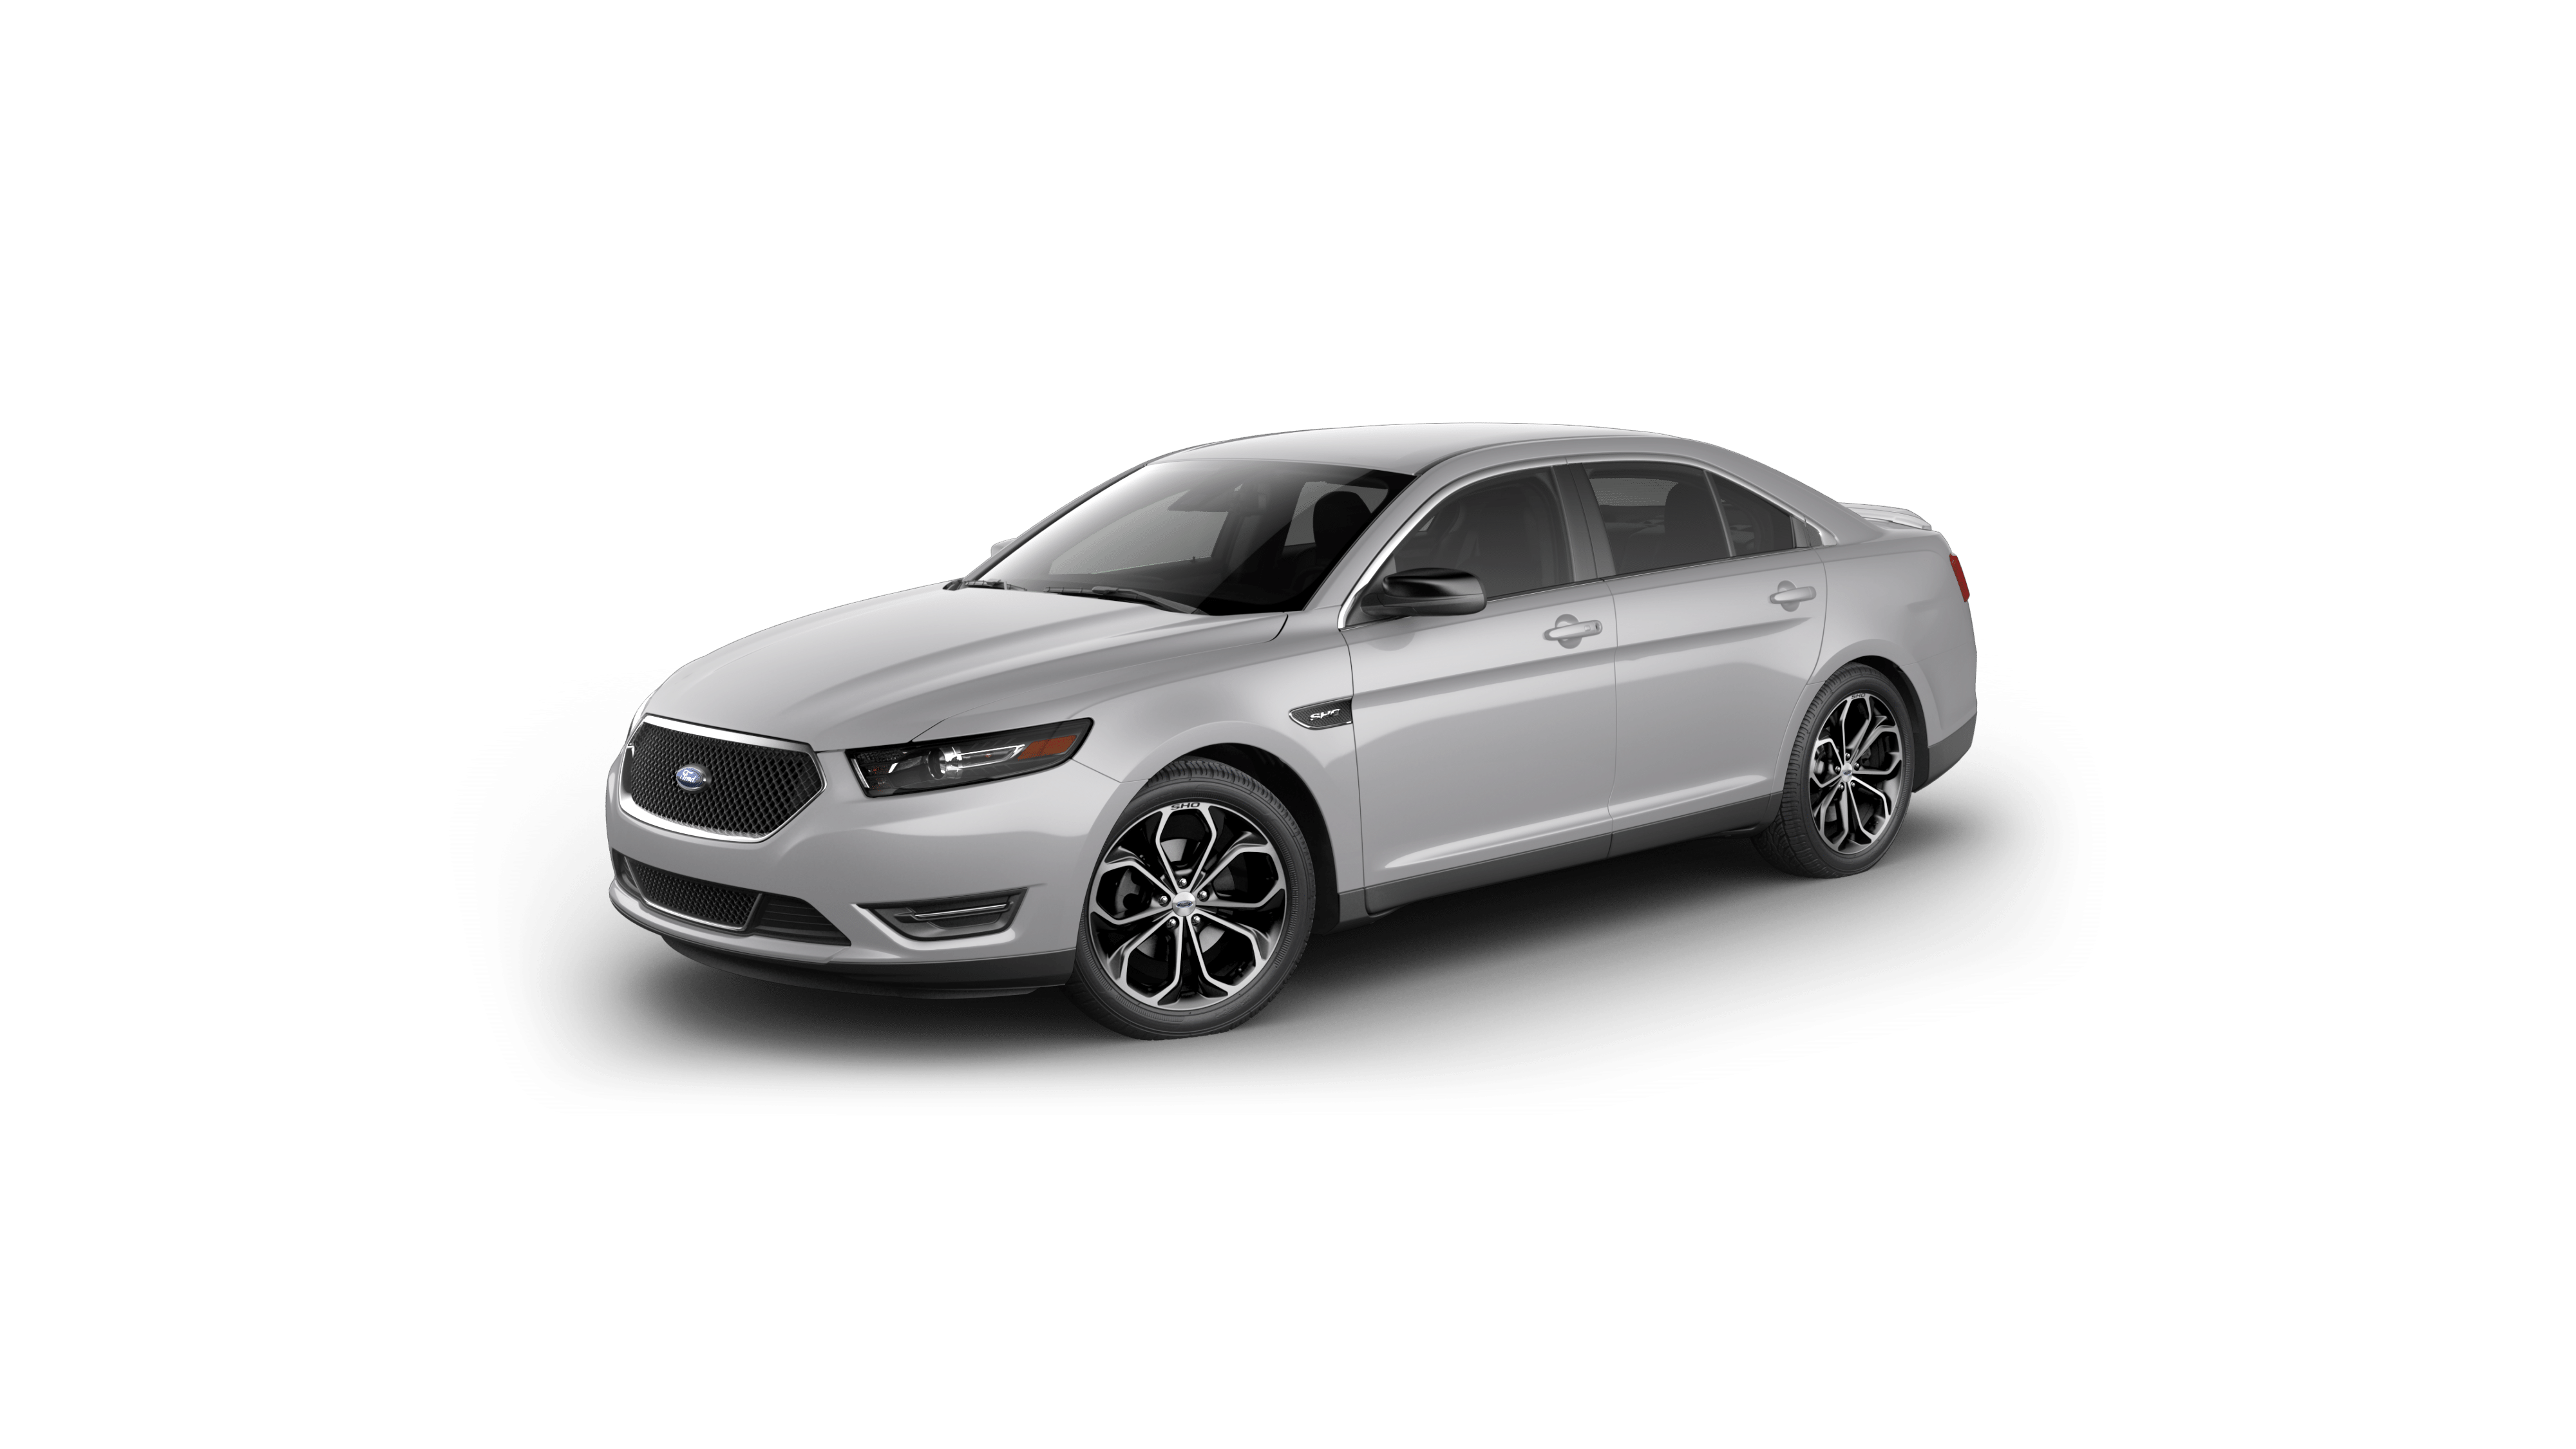 73 Best 2019 Ford Taurus Sho Review And Release Date